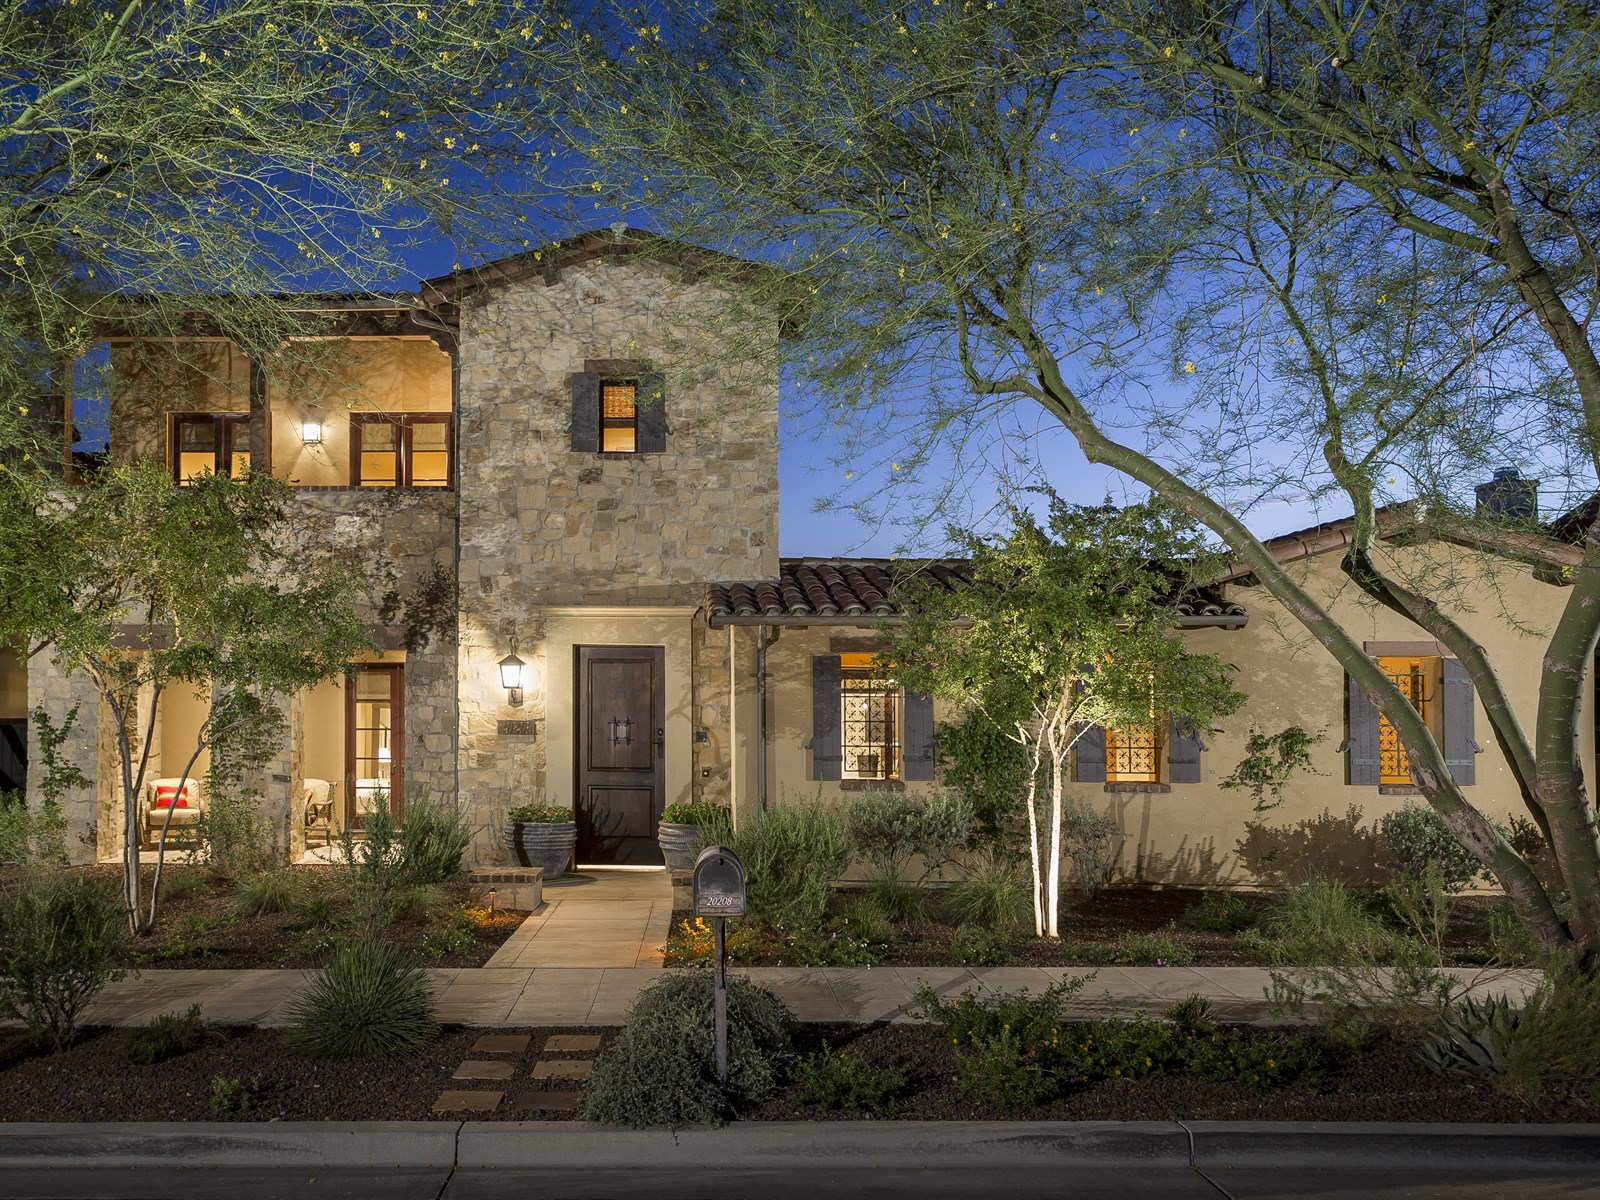 独户住宅 为 销售 在 Stunning Silverleaf Verandah With Traditional Tuscan Architecture 202085 N 101st Way #1202 Scottsdale, 亚利桑那州 85255 美国